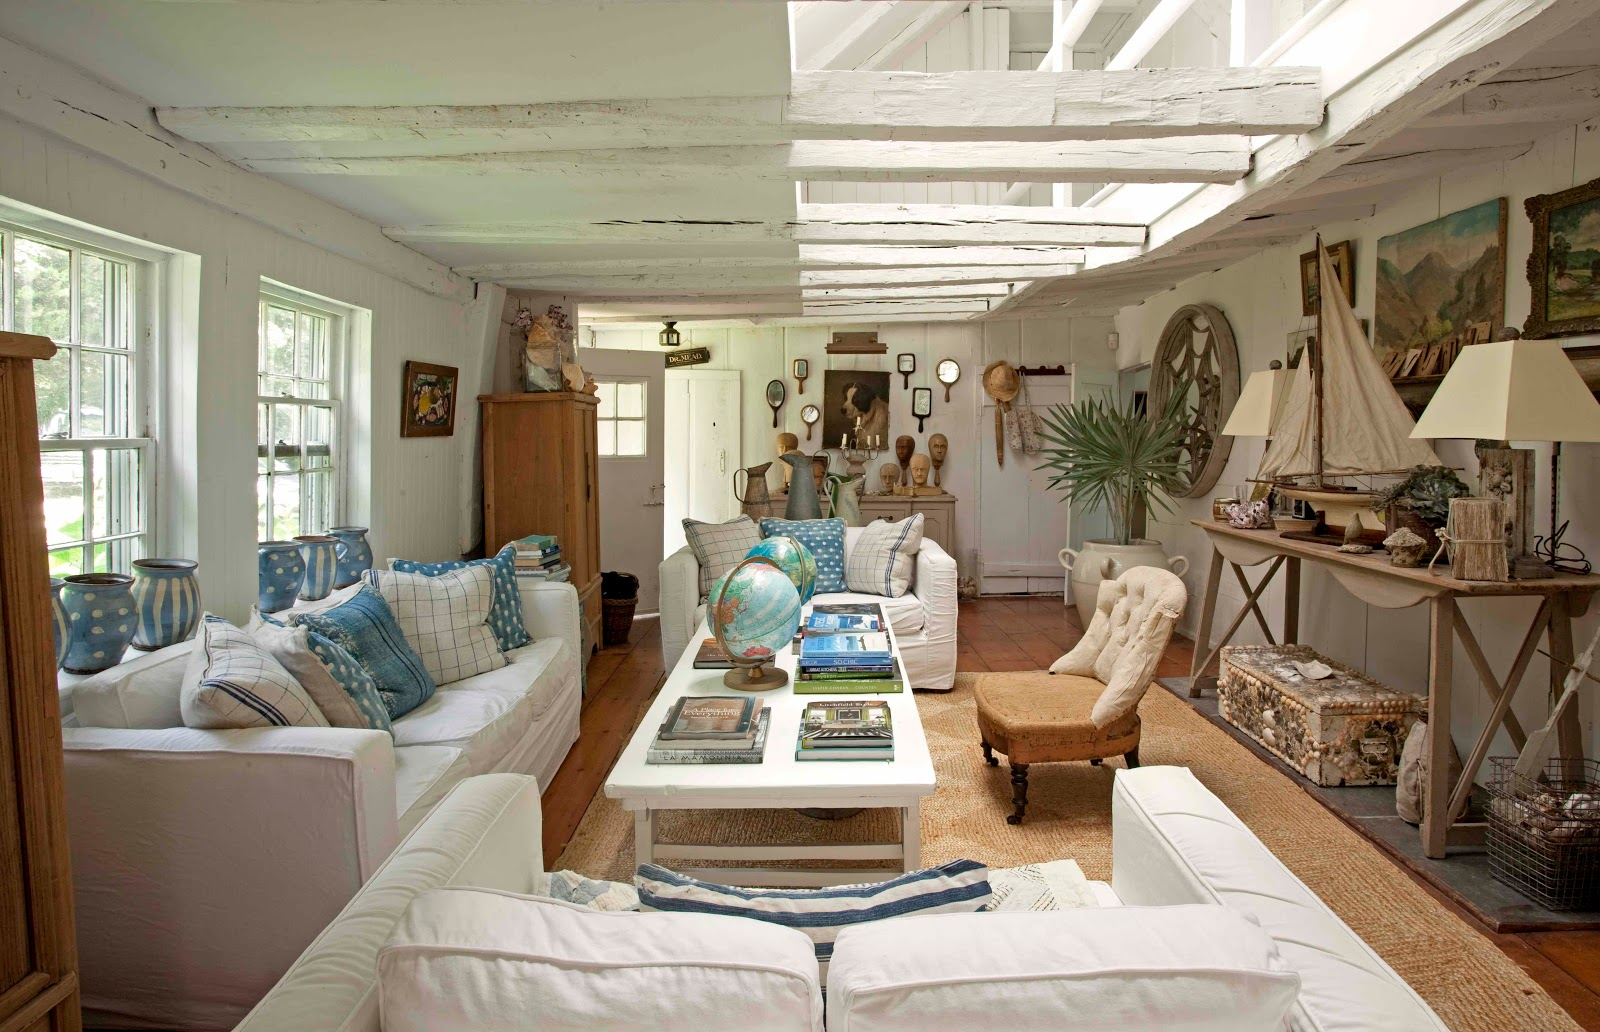 STYLEBEAT: SEASIDE CHARM: ROOMS THAT INSPIRE BY THE SEA